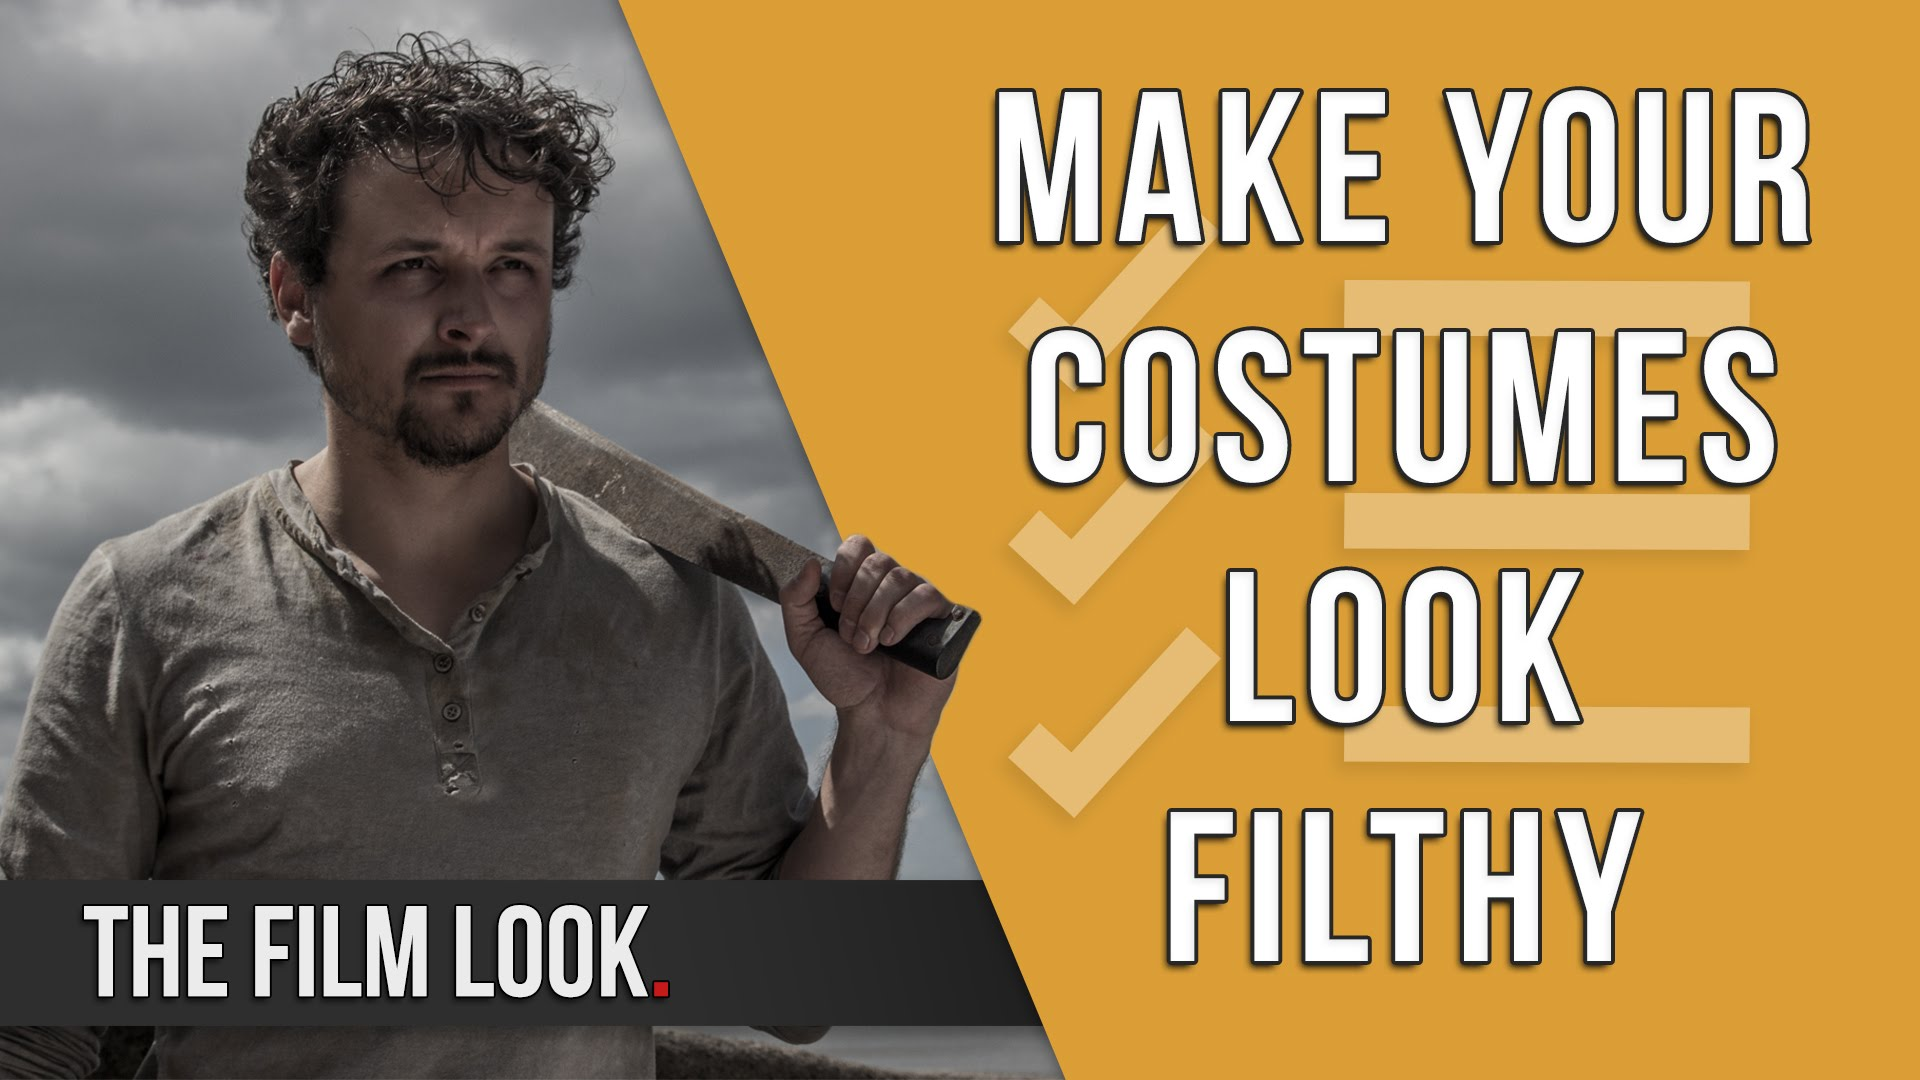 Make Your Costumes Look Filthy.jpg